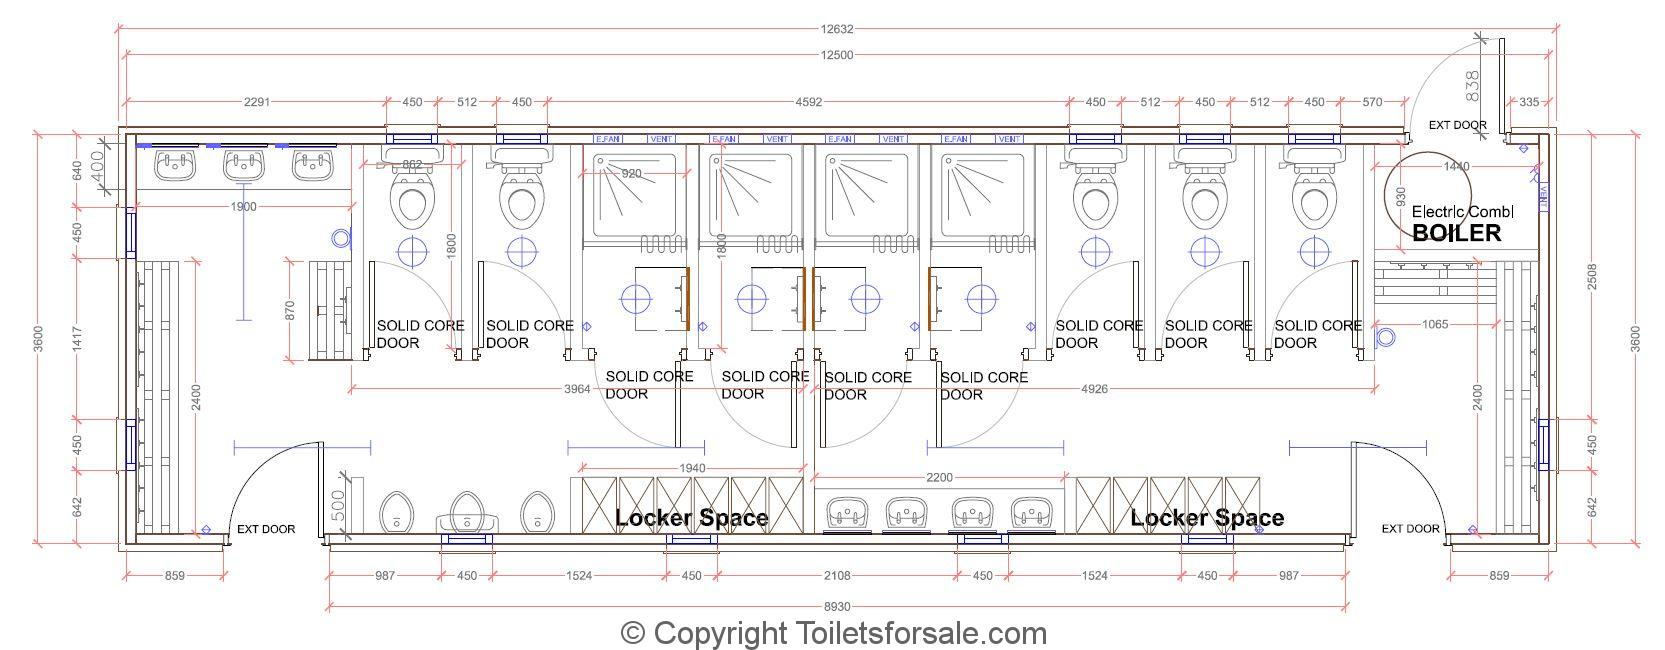 Locker Room And Toilet Floor Plan Design